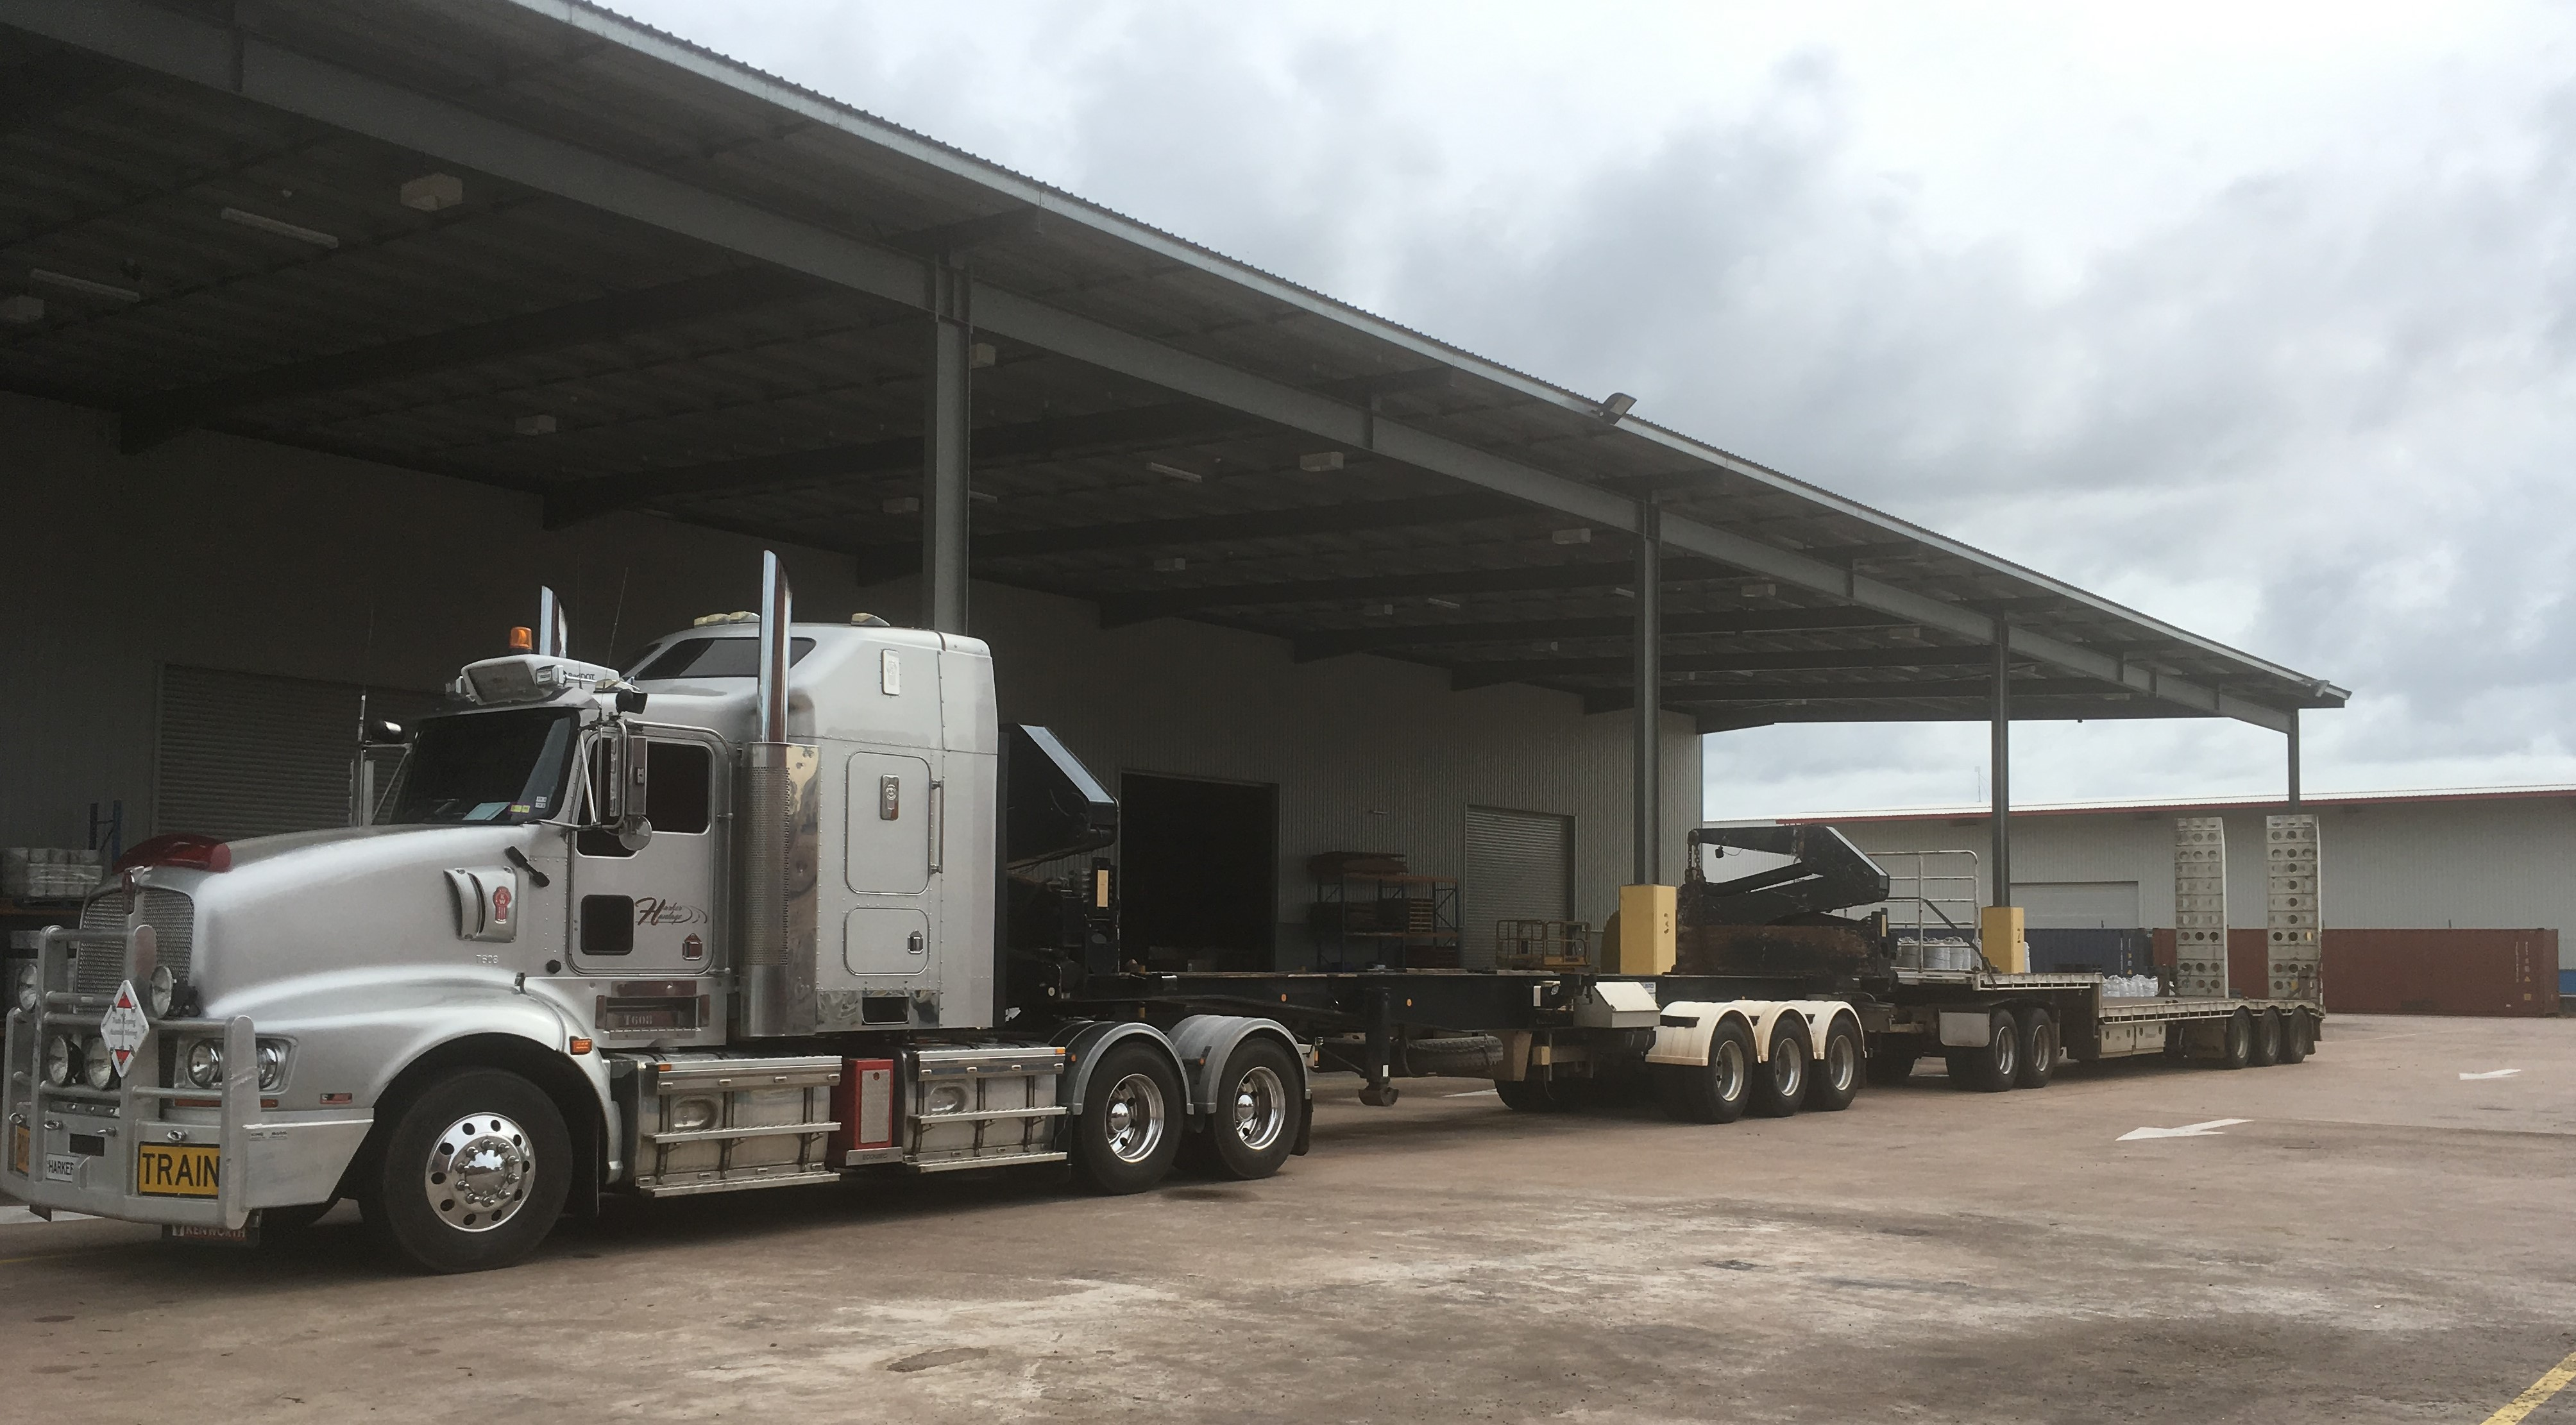 Harker Haulage freight transport